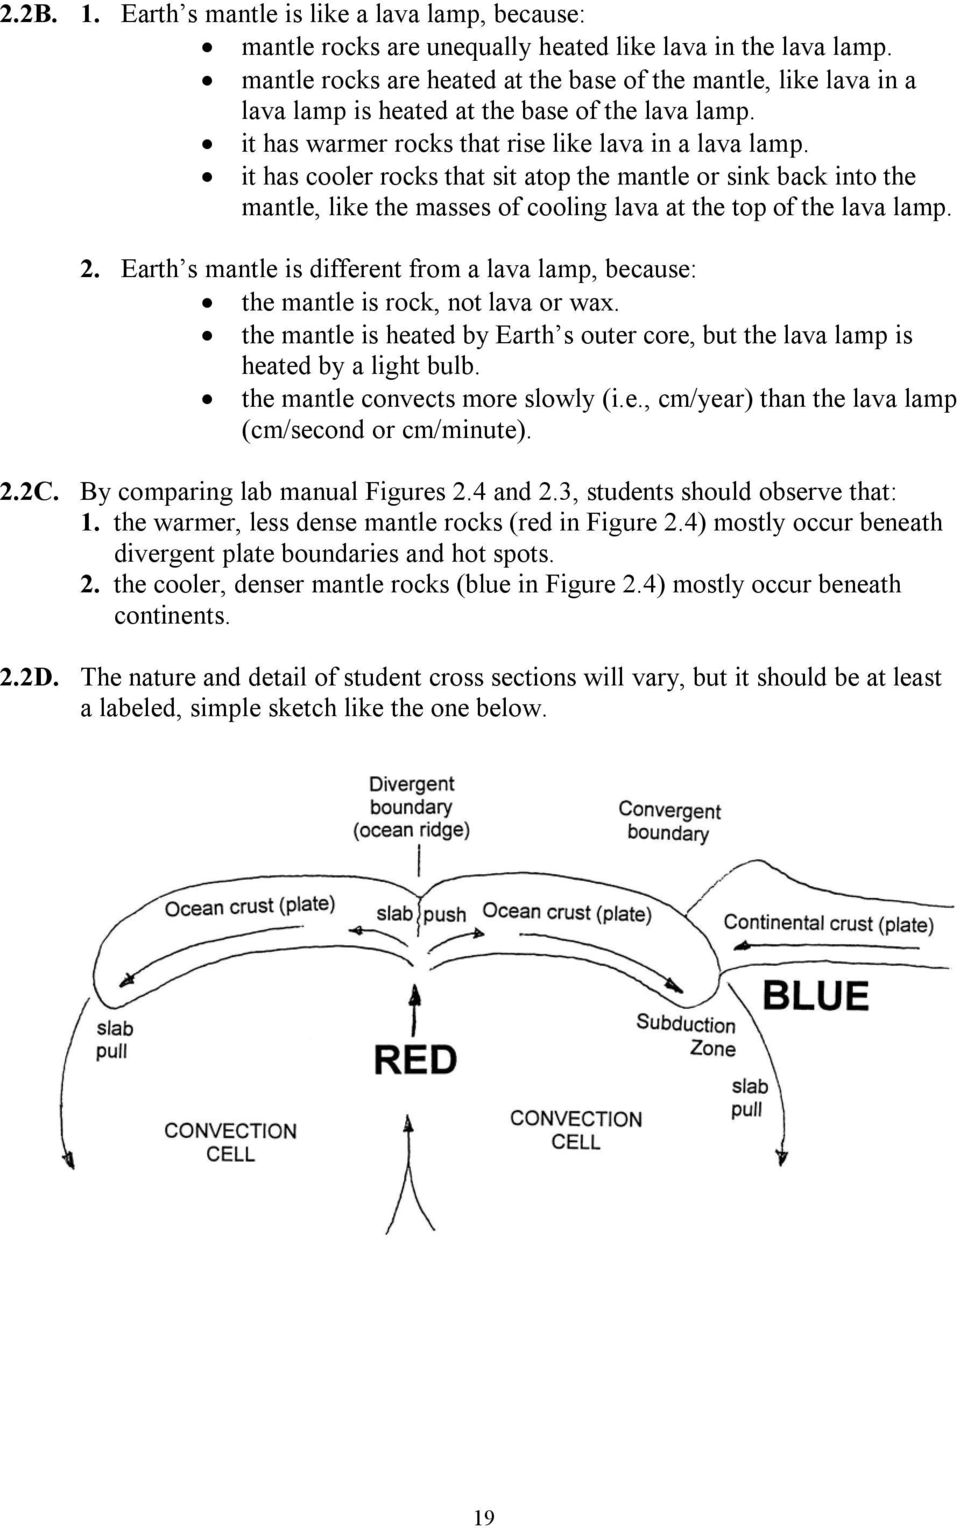 worksheet Lava Lamp Experiment Worksheet laboratory two plate tectonics and the origin of magma pdf it has cooler rocks that sit atop mantle or sink back into mantle